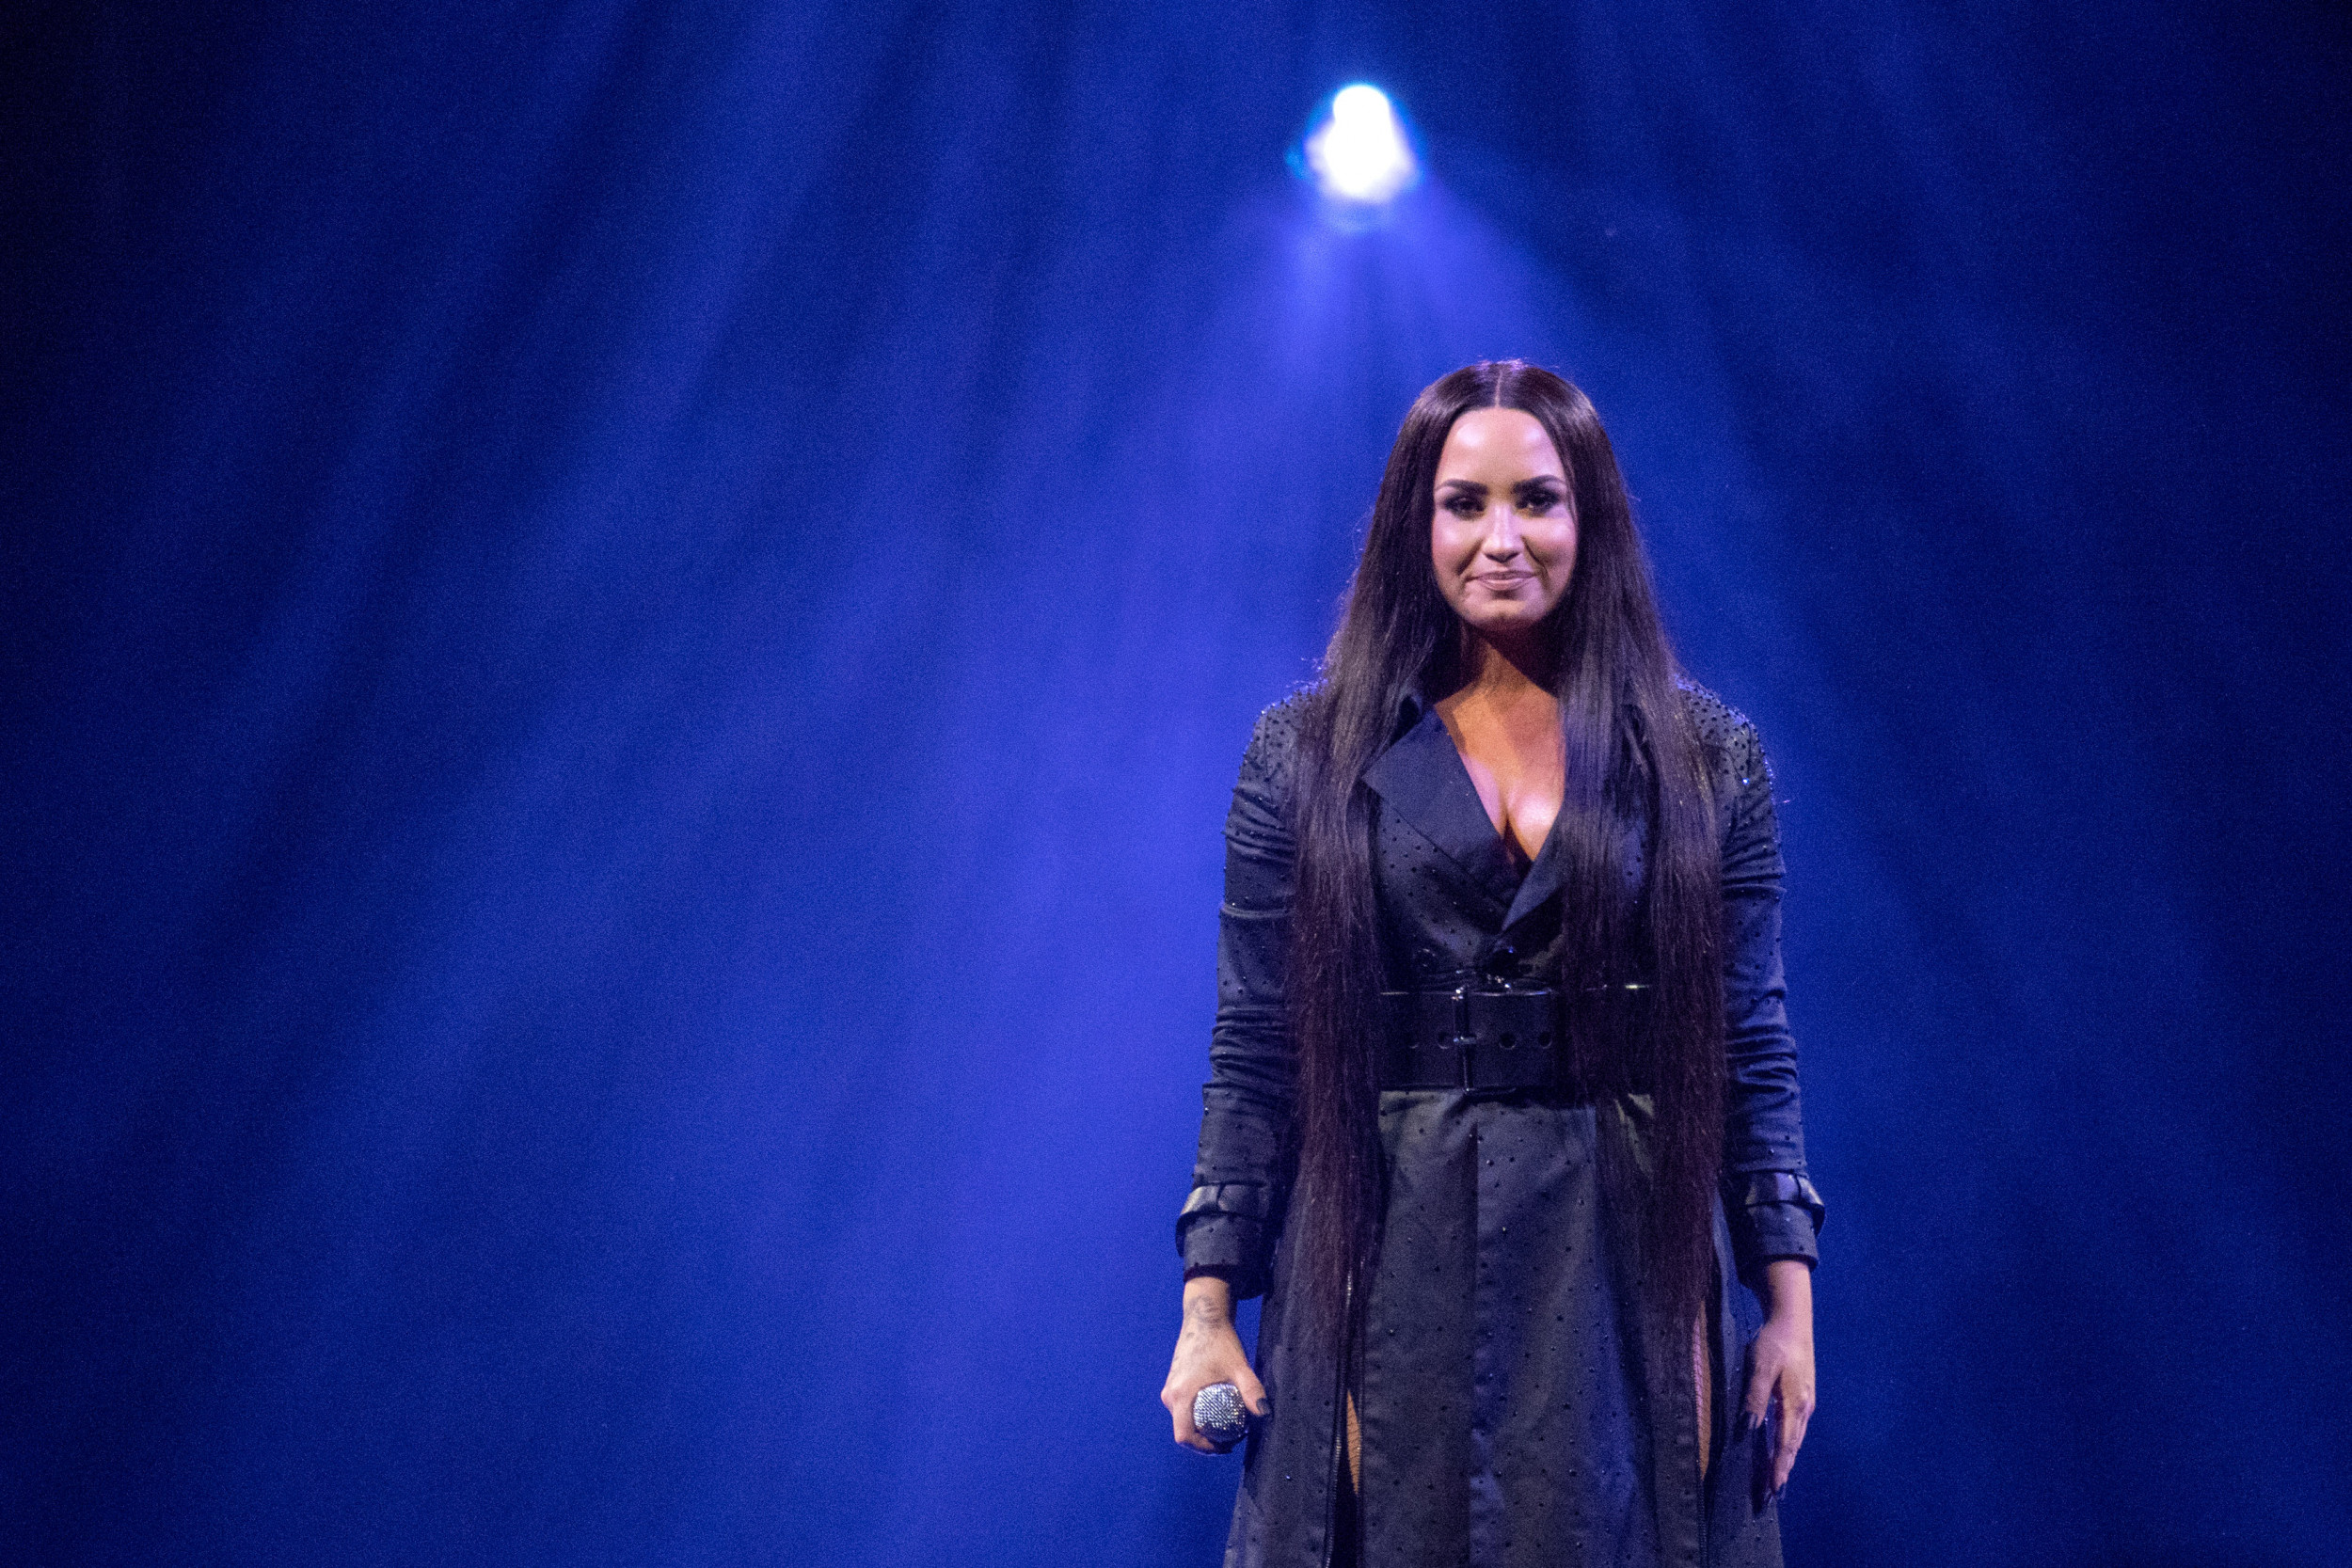 Demi Lovato Nude Photos Leaked After Snapchat Hack? Fans Rally Around Singer on Twitter